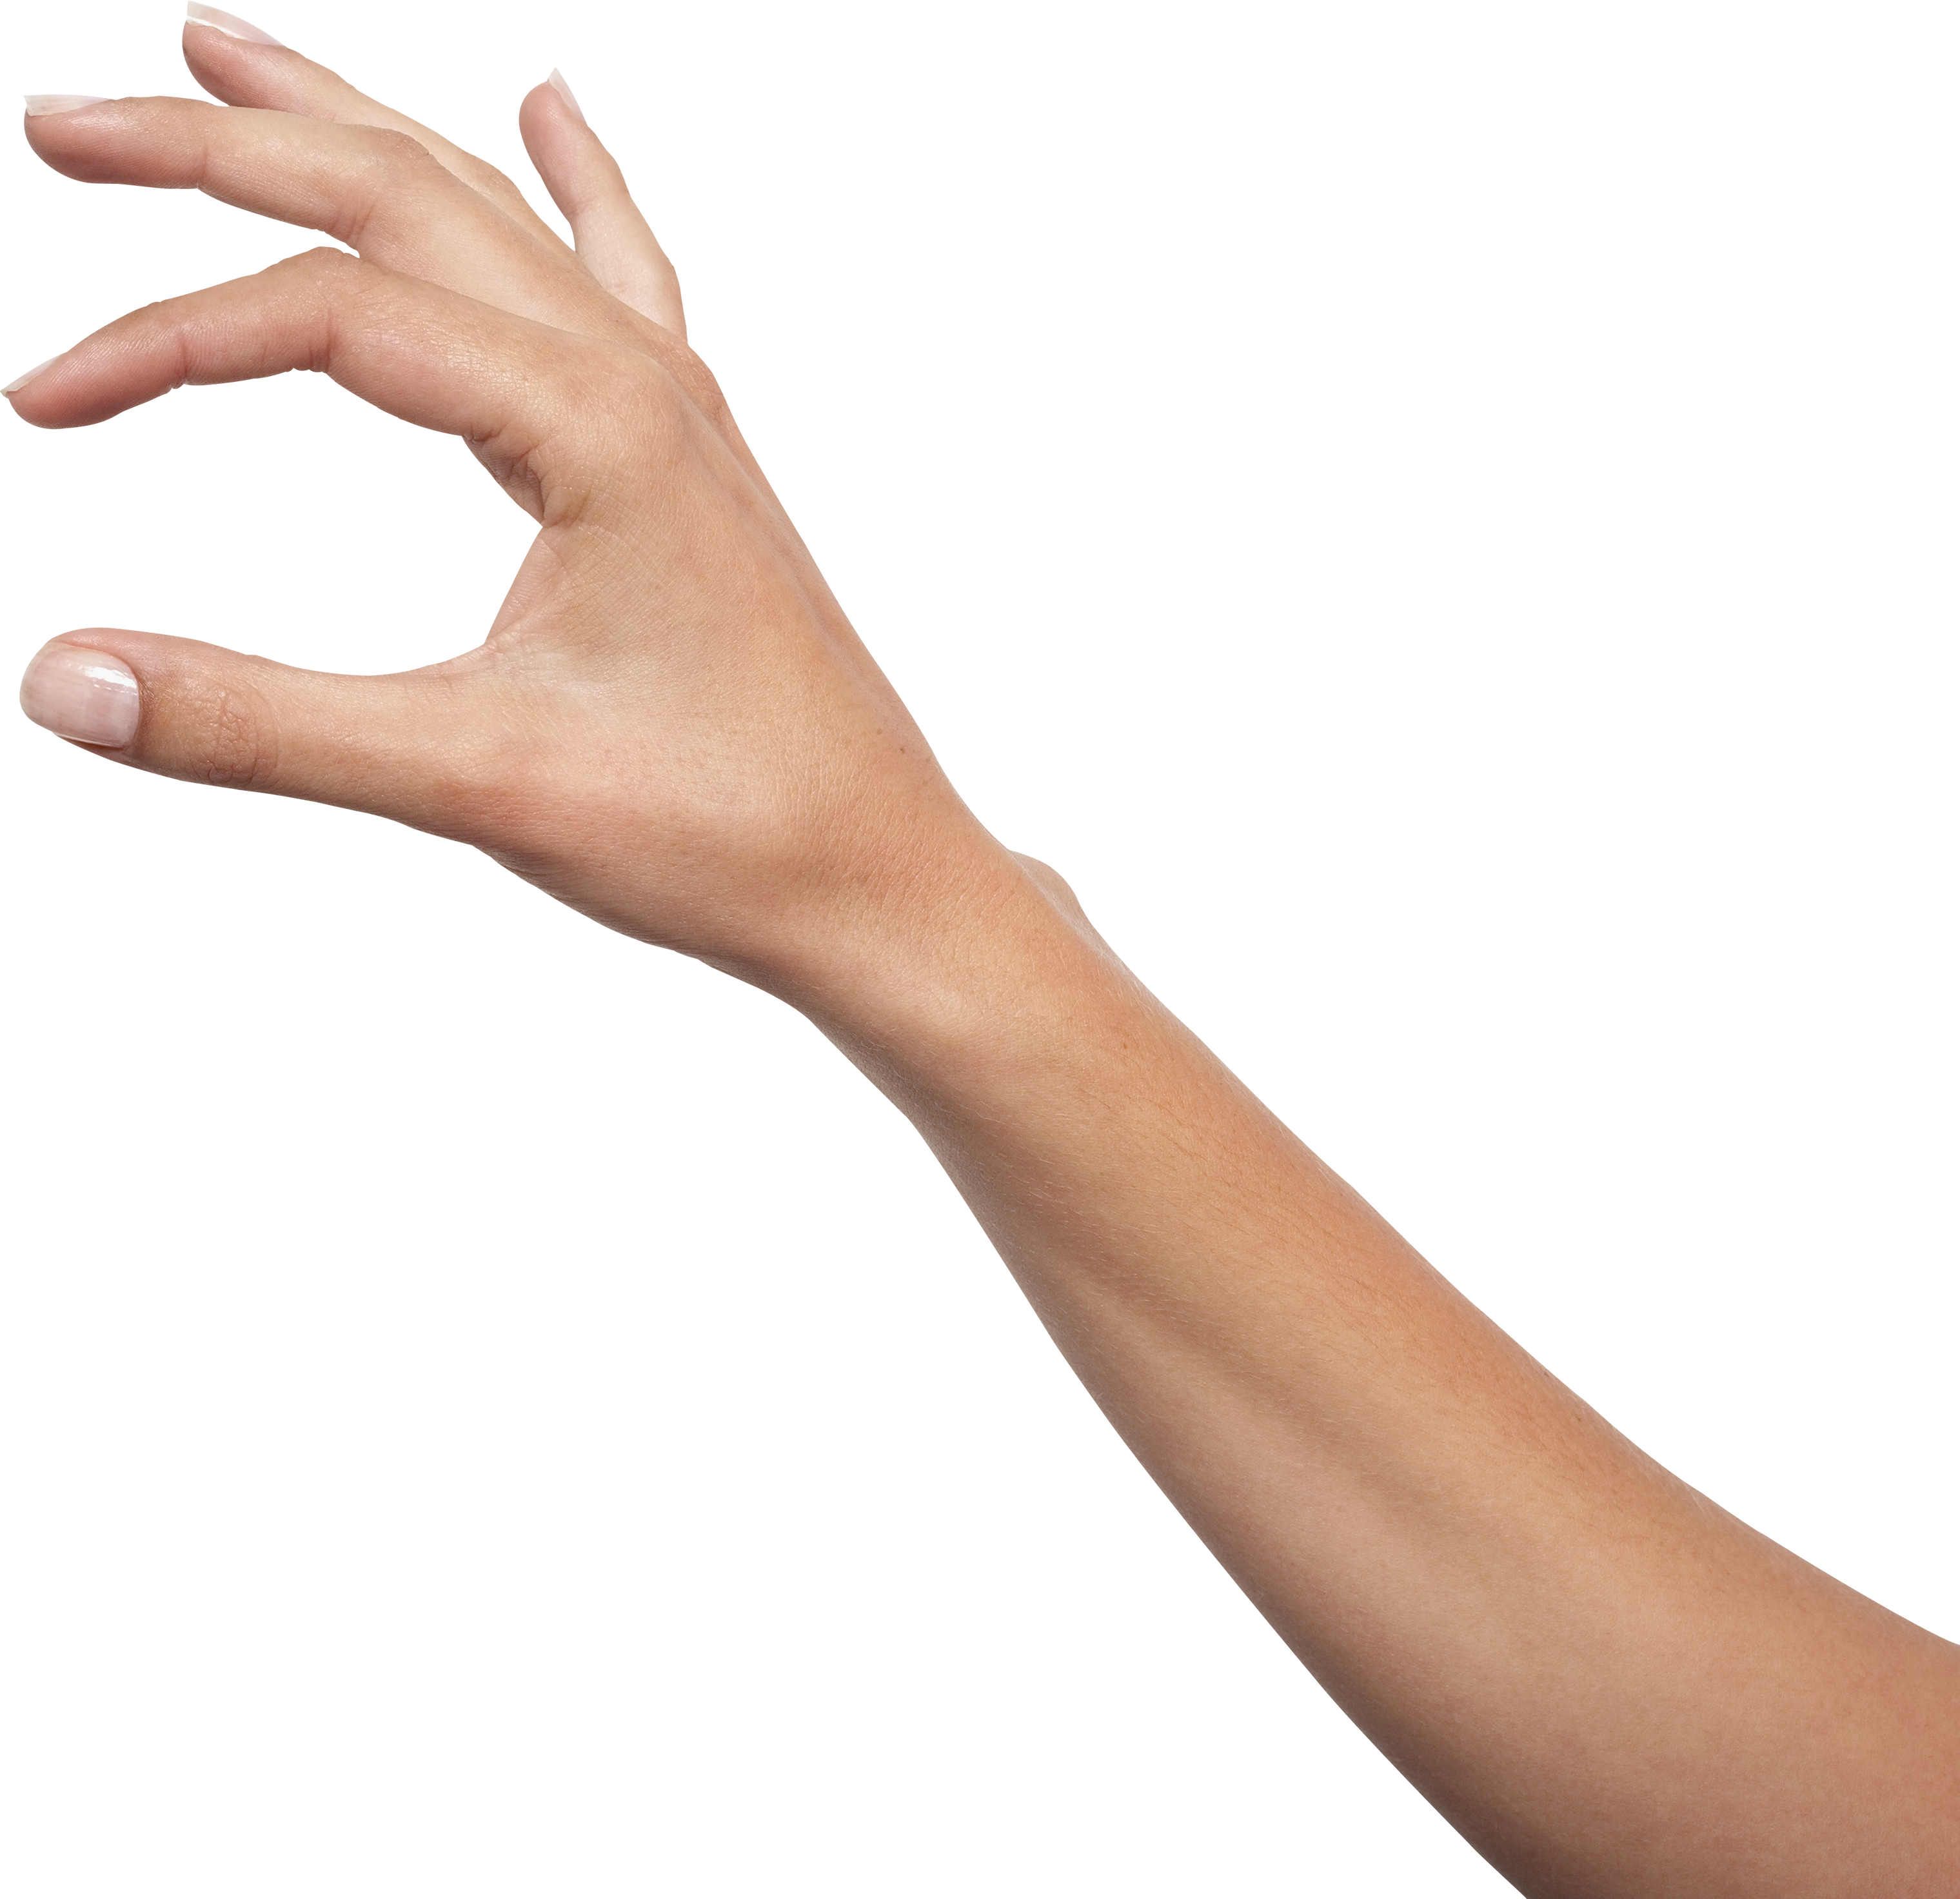 image black and white download Png free images pictures. Hands clipart forearm